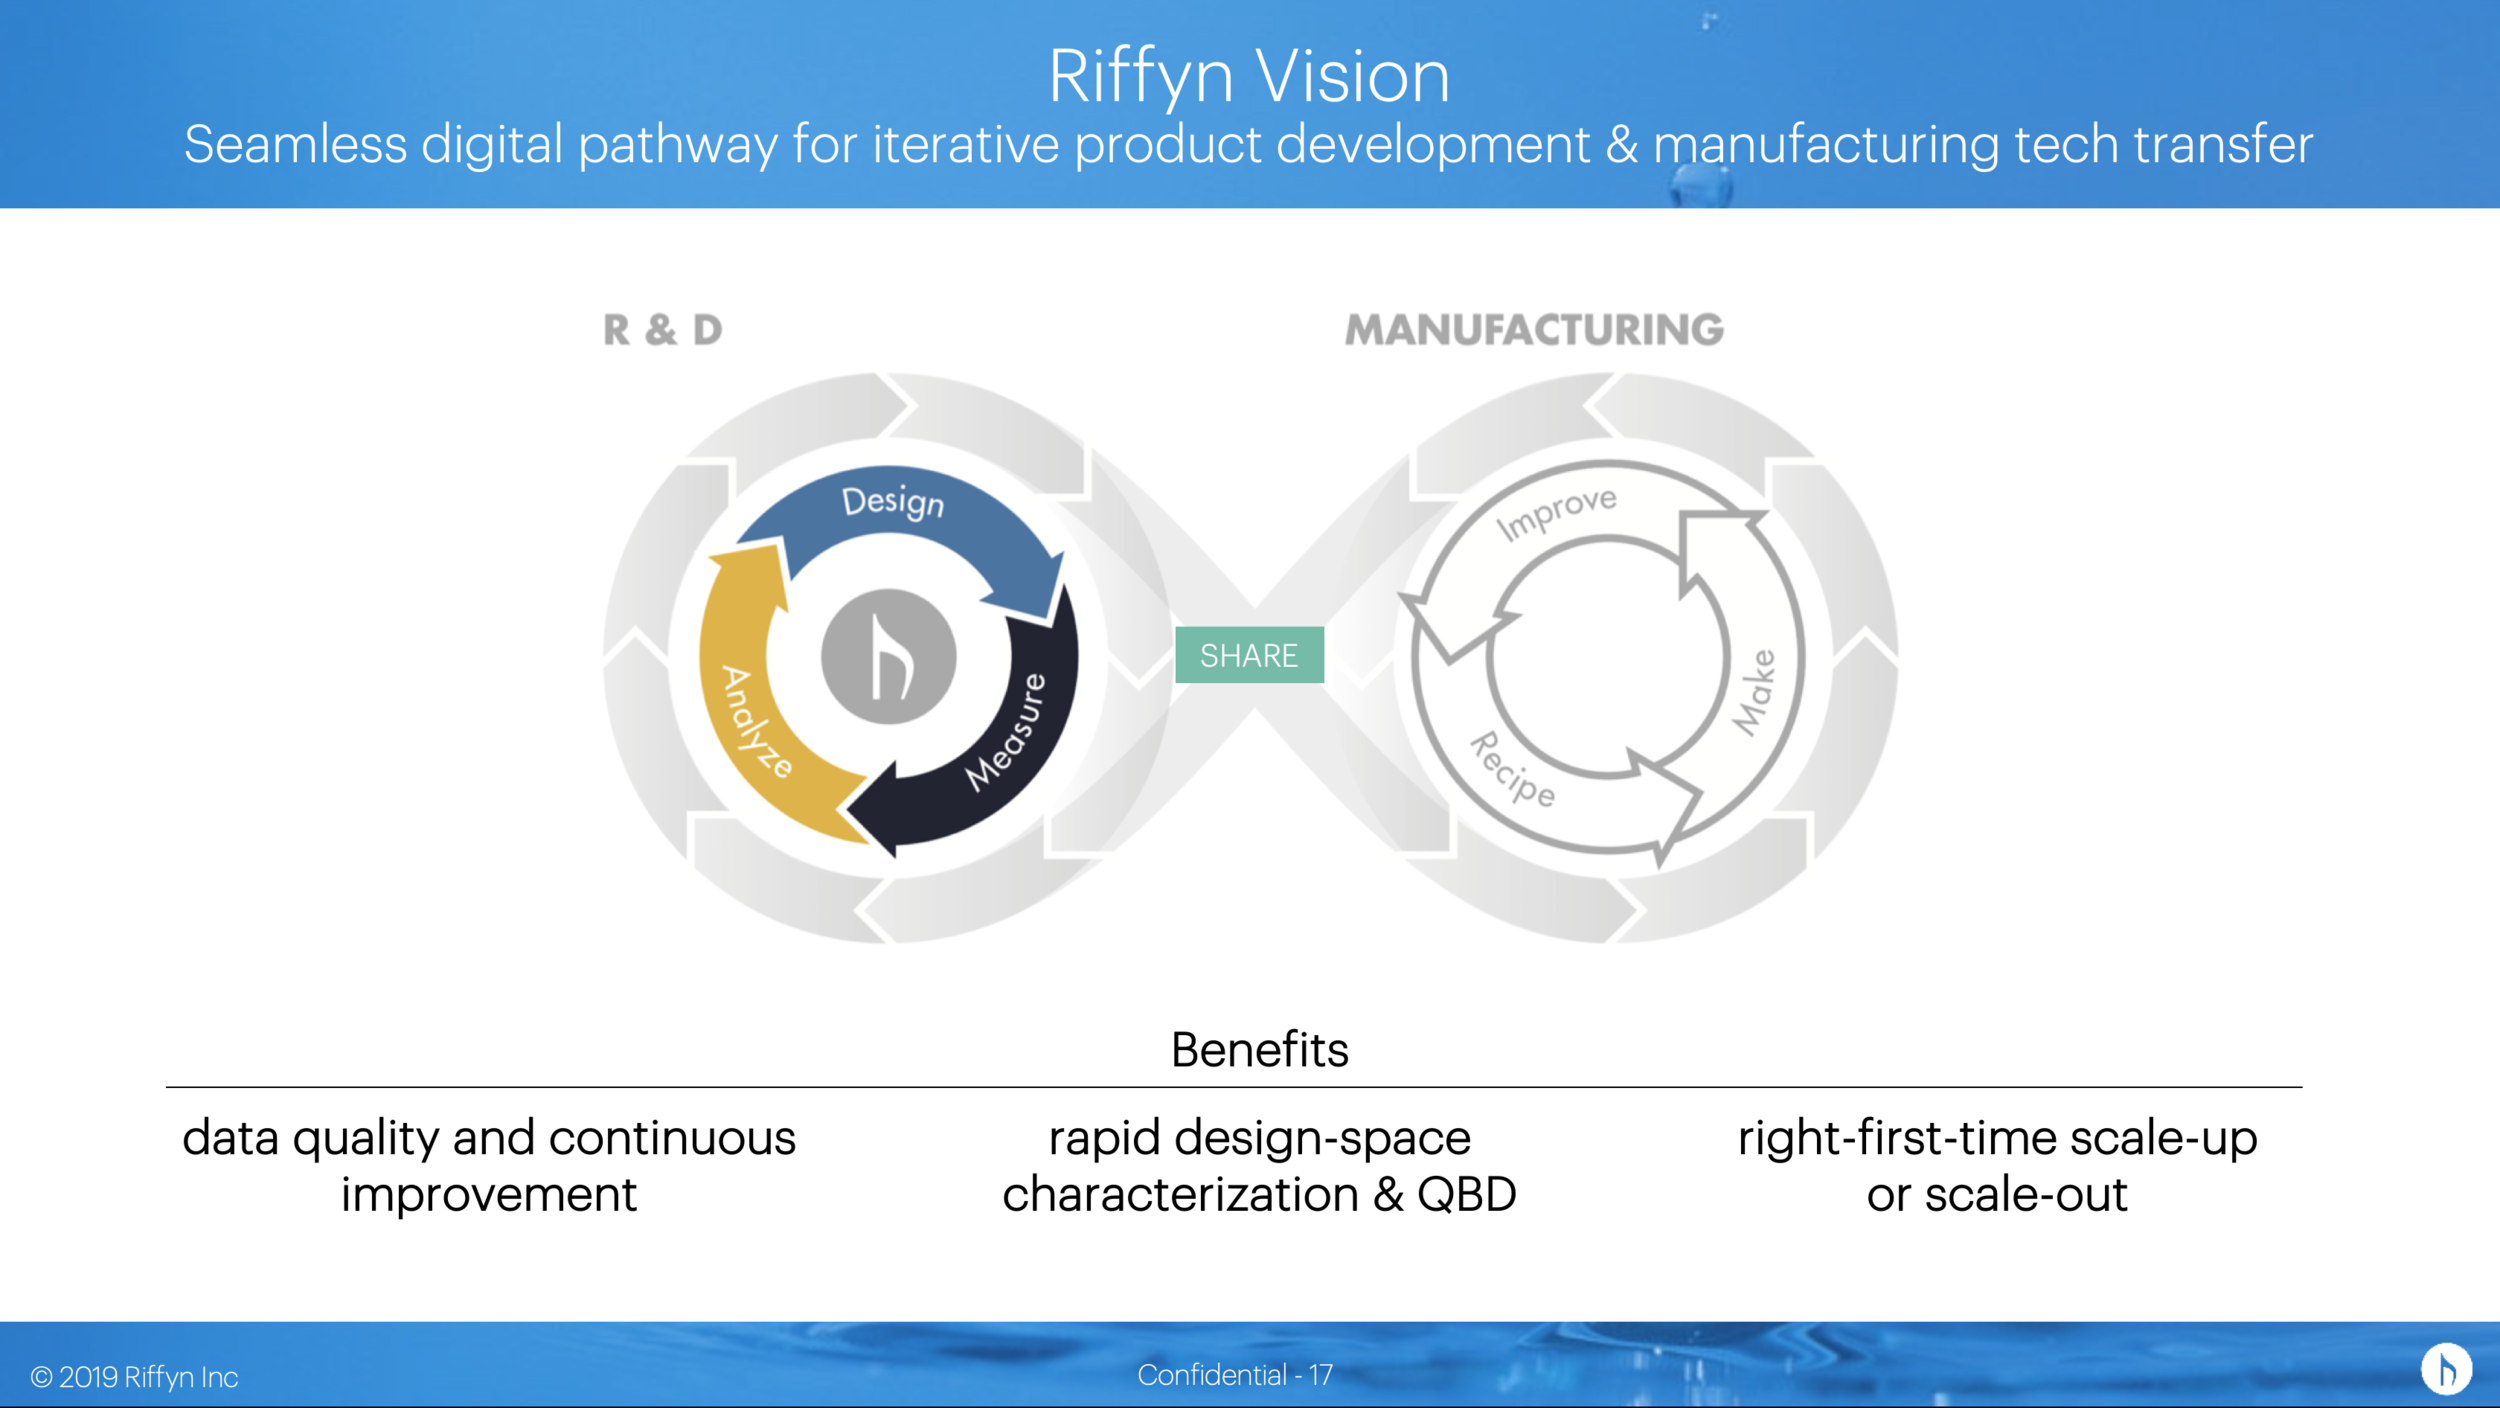 Figure 10: With source code for science, it becomes possible to automate the digital transfer of R&D innovations and data to manufacturing.